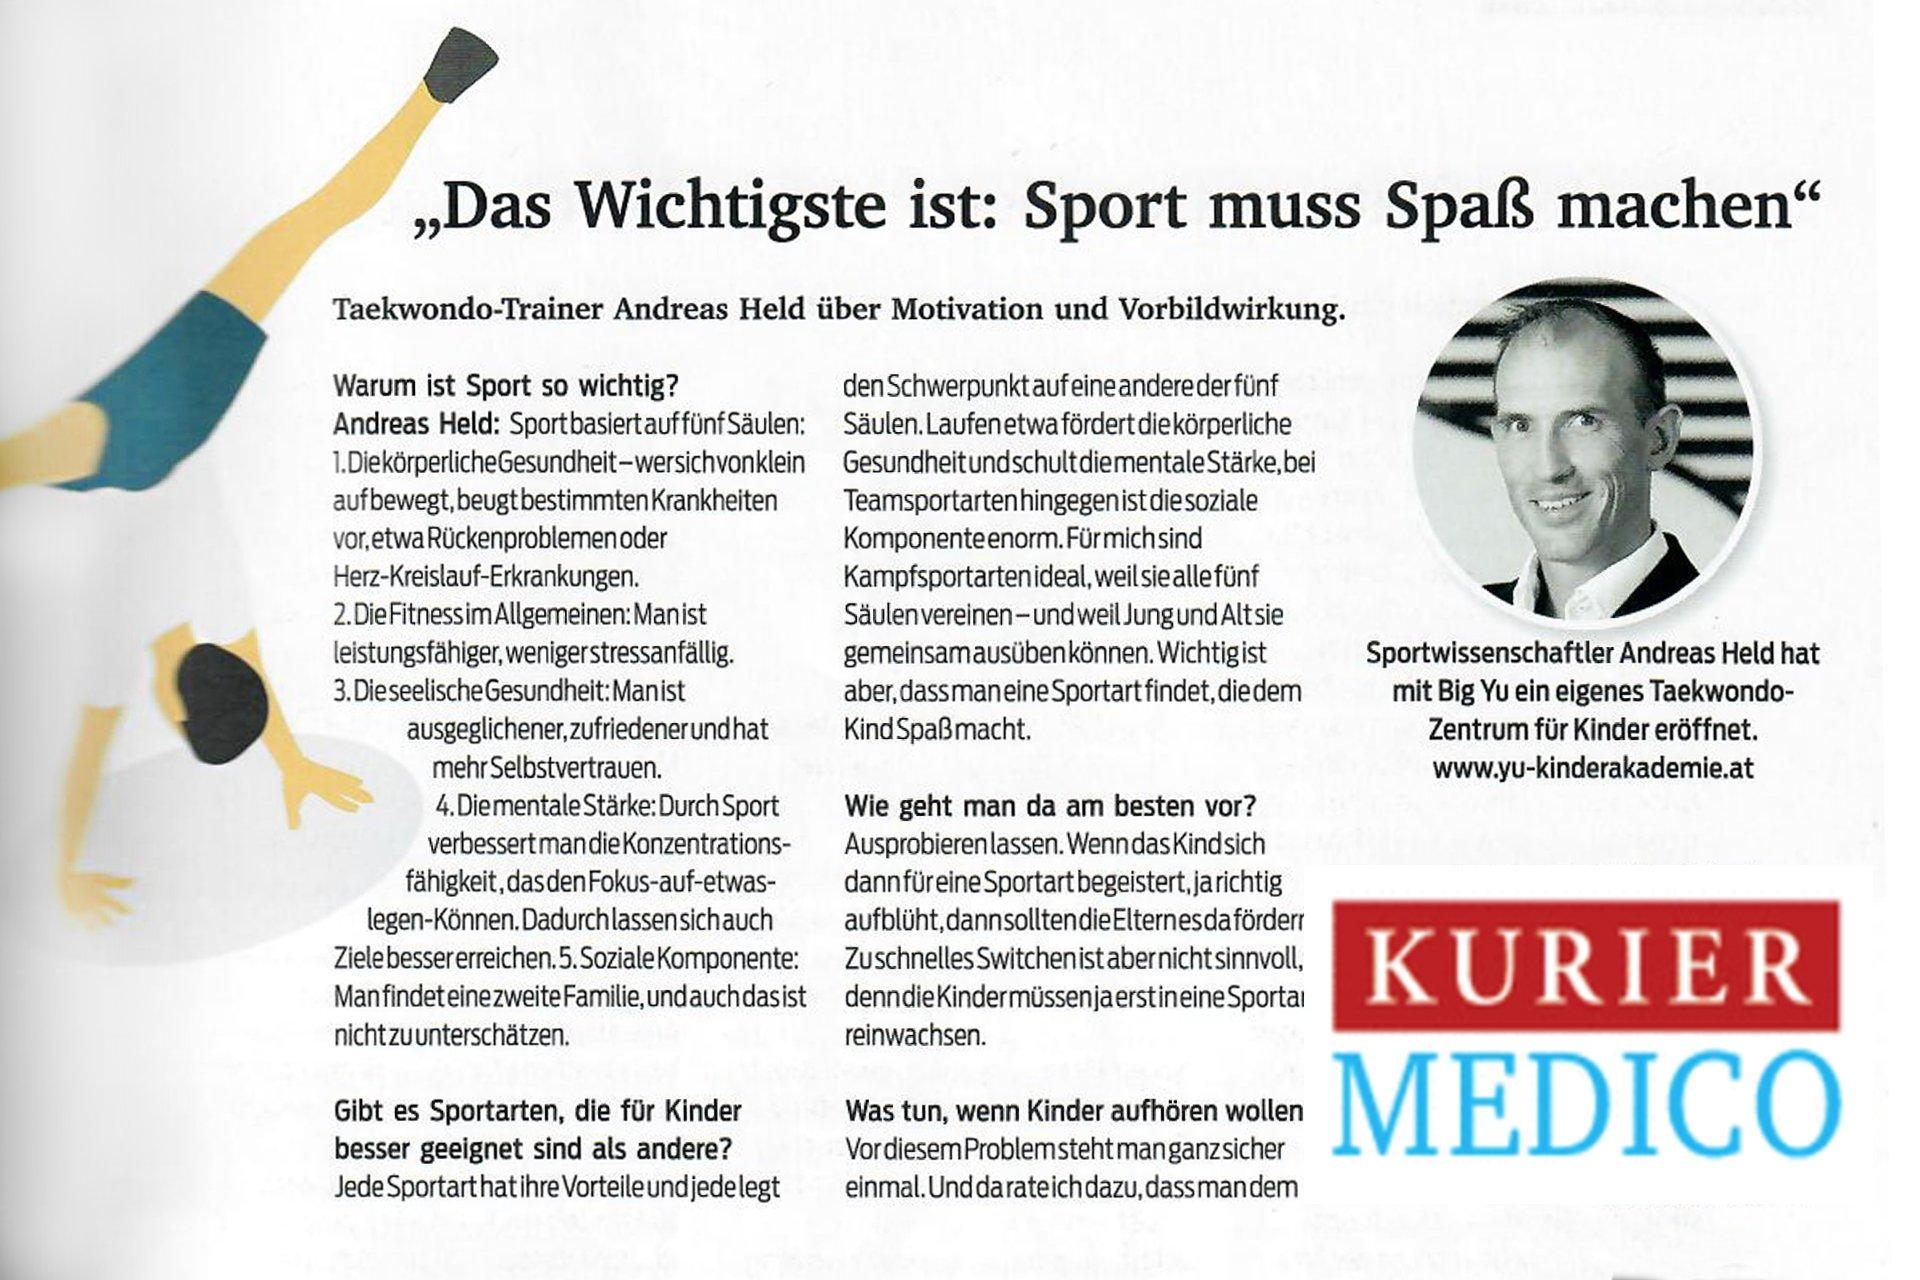 YOUNG-UNG im Kurier-Magazin Medico